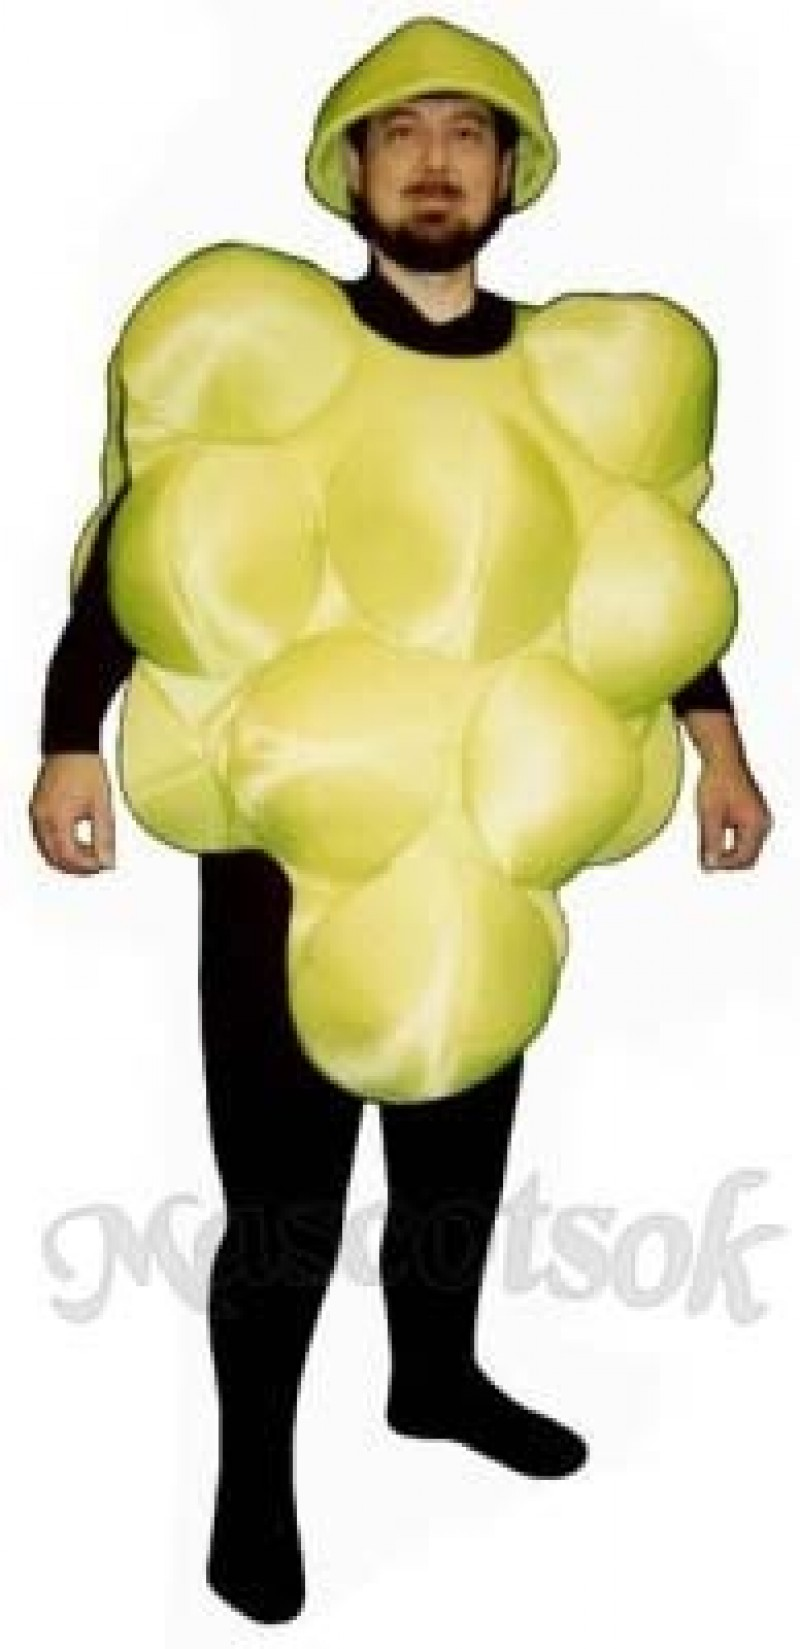 Green Grapes Mascot Costume